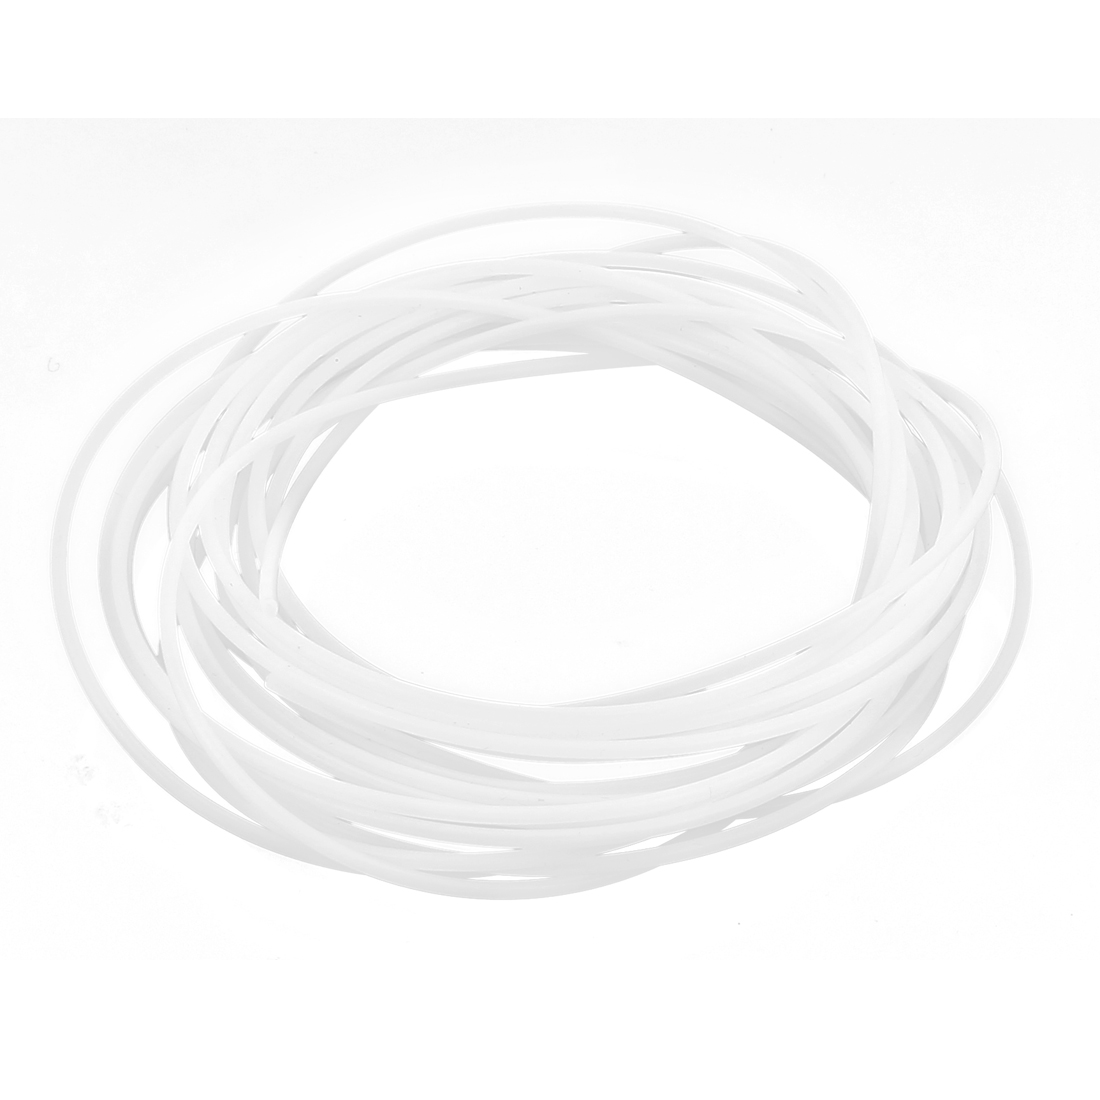 5Meters 3mm ID 4mm OD PTFE Tubing Tube Pipe for 3D Printer RepRap